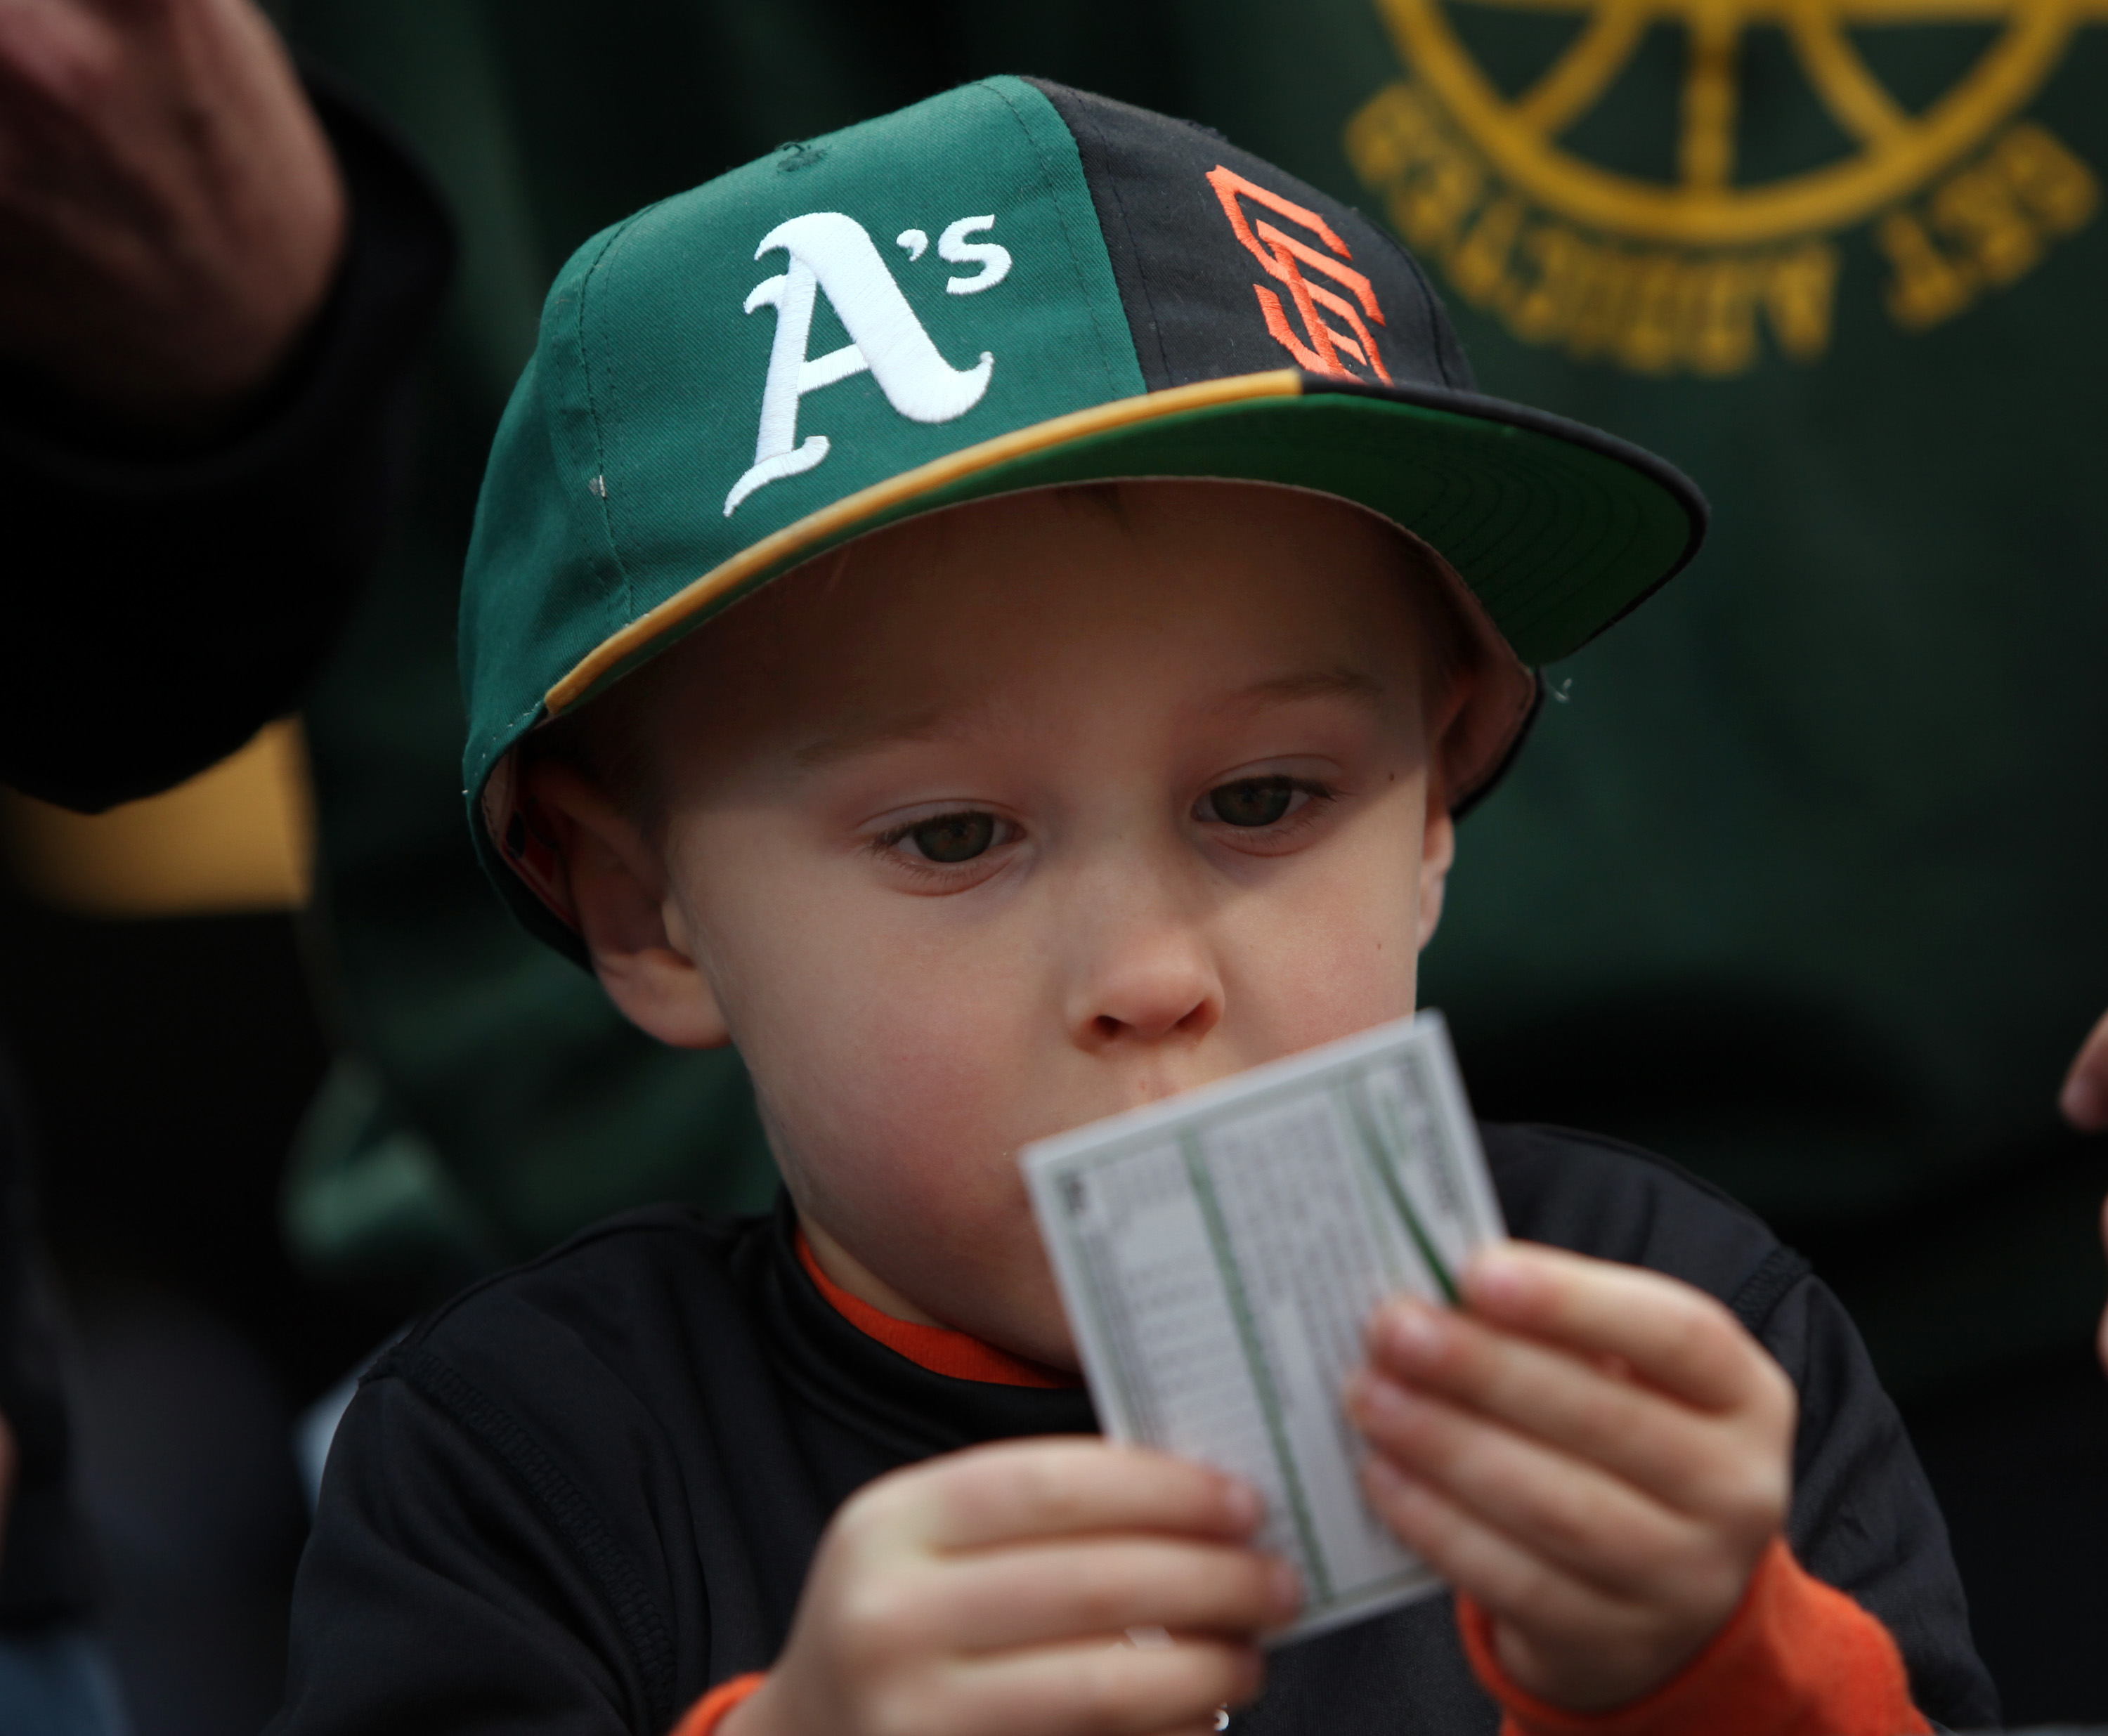 Charlie Chesnosky, 3, of Burllingame, studies a baseball card while wearing his split bill A's-Giants hat before the first game of the Bay Bridge spring training series between the Oakland Athletics and the San Francisco Giants Thursday March 27, 2014, at